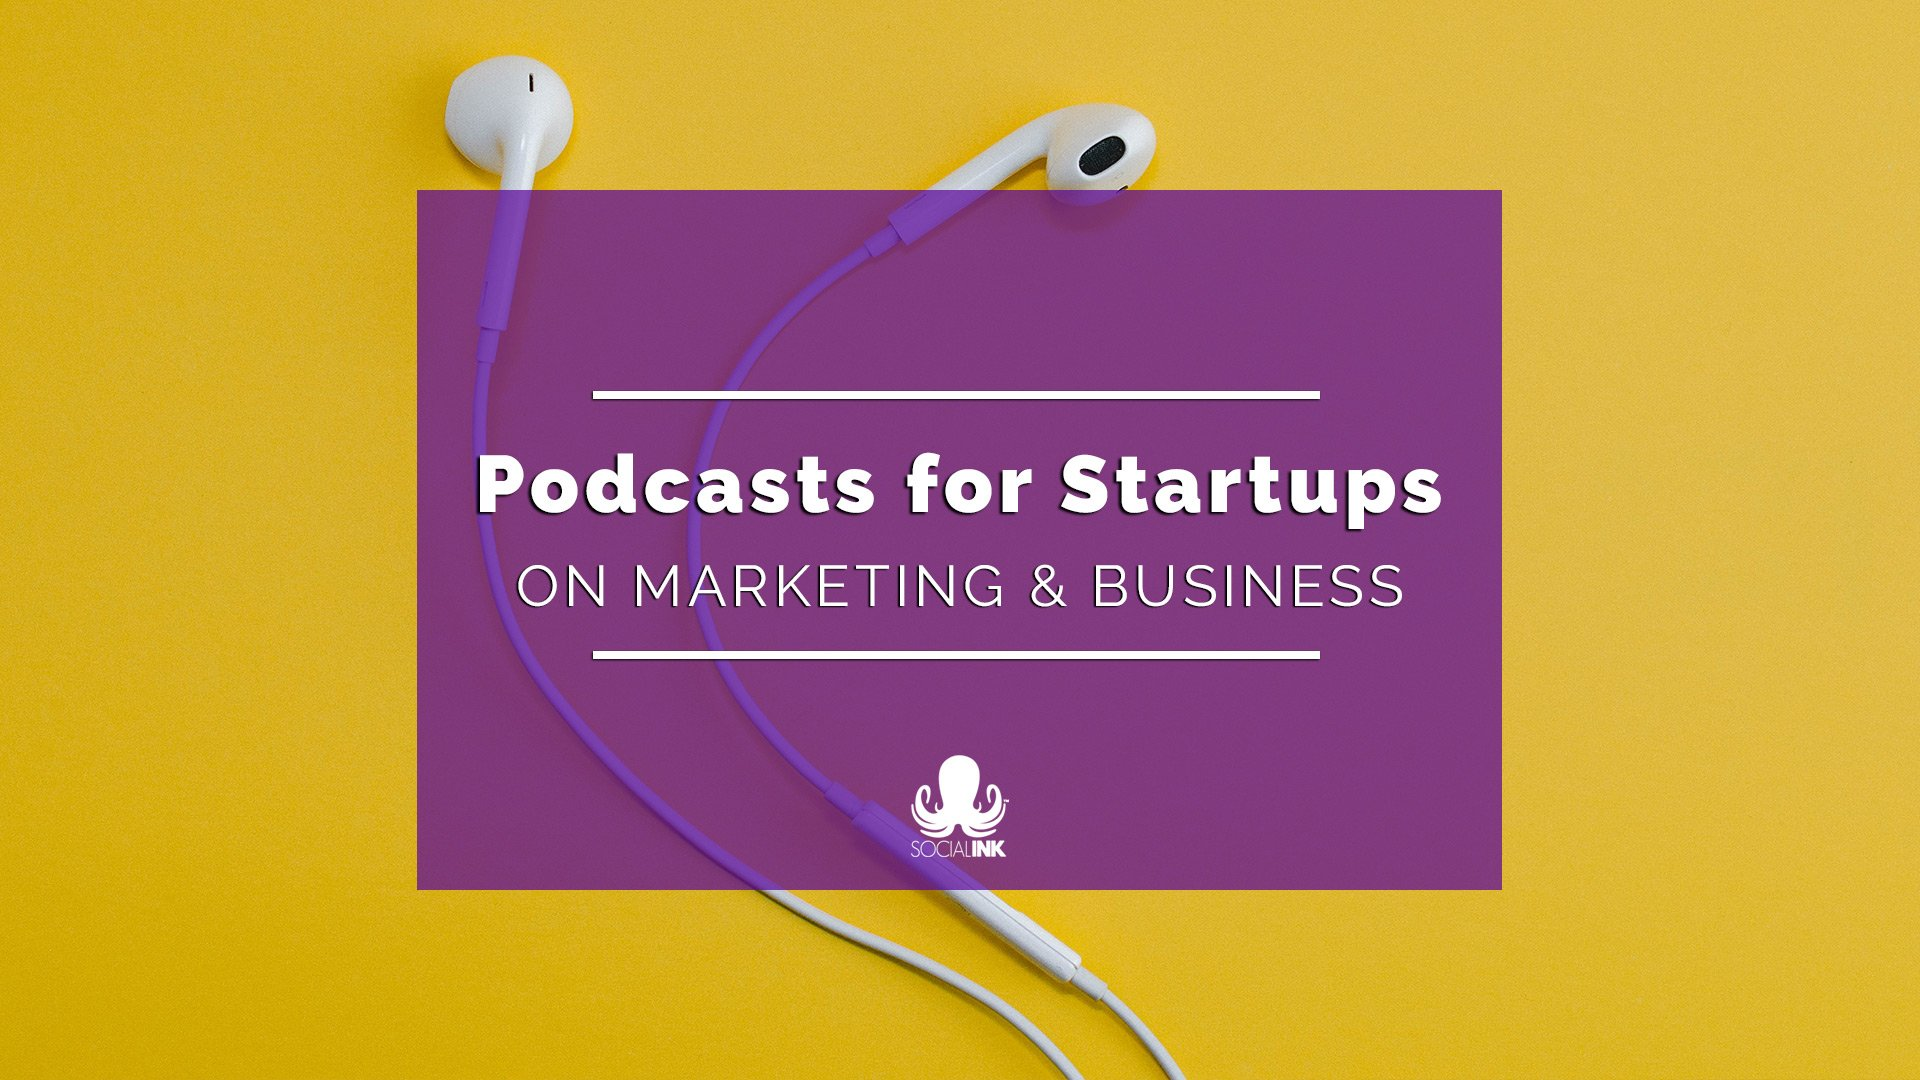 19 Marketing and Business Podcasts to Build a Great Business